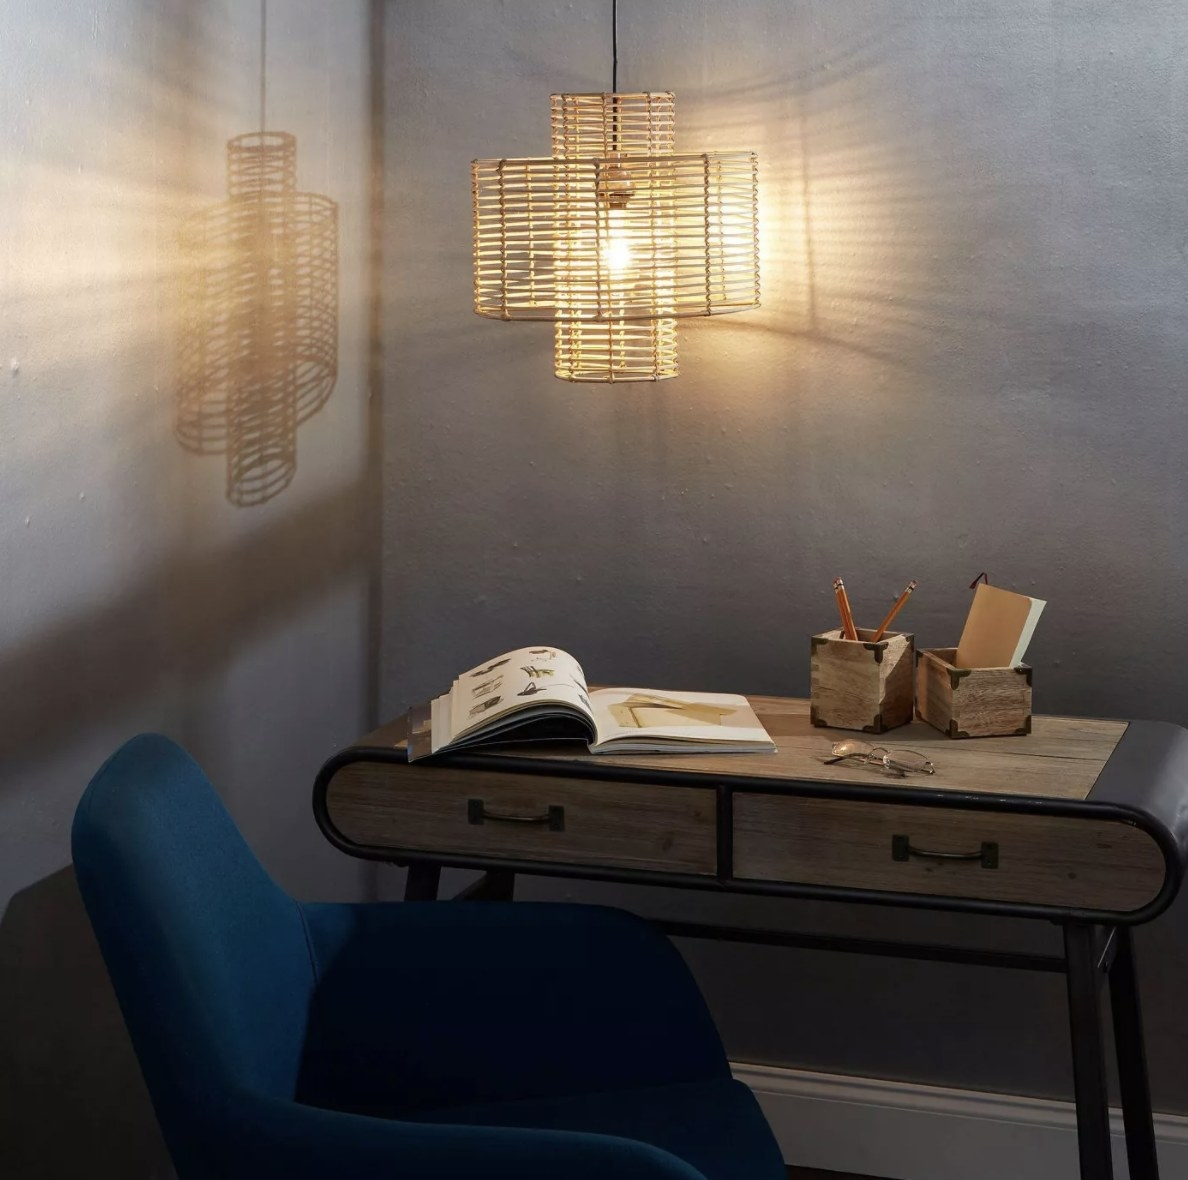 The rattan light has intersecting cylinder frames and casts a beautiful shadow on the wall